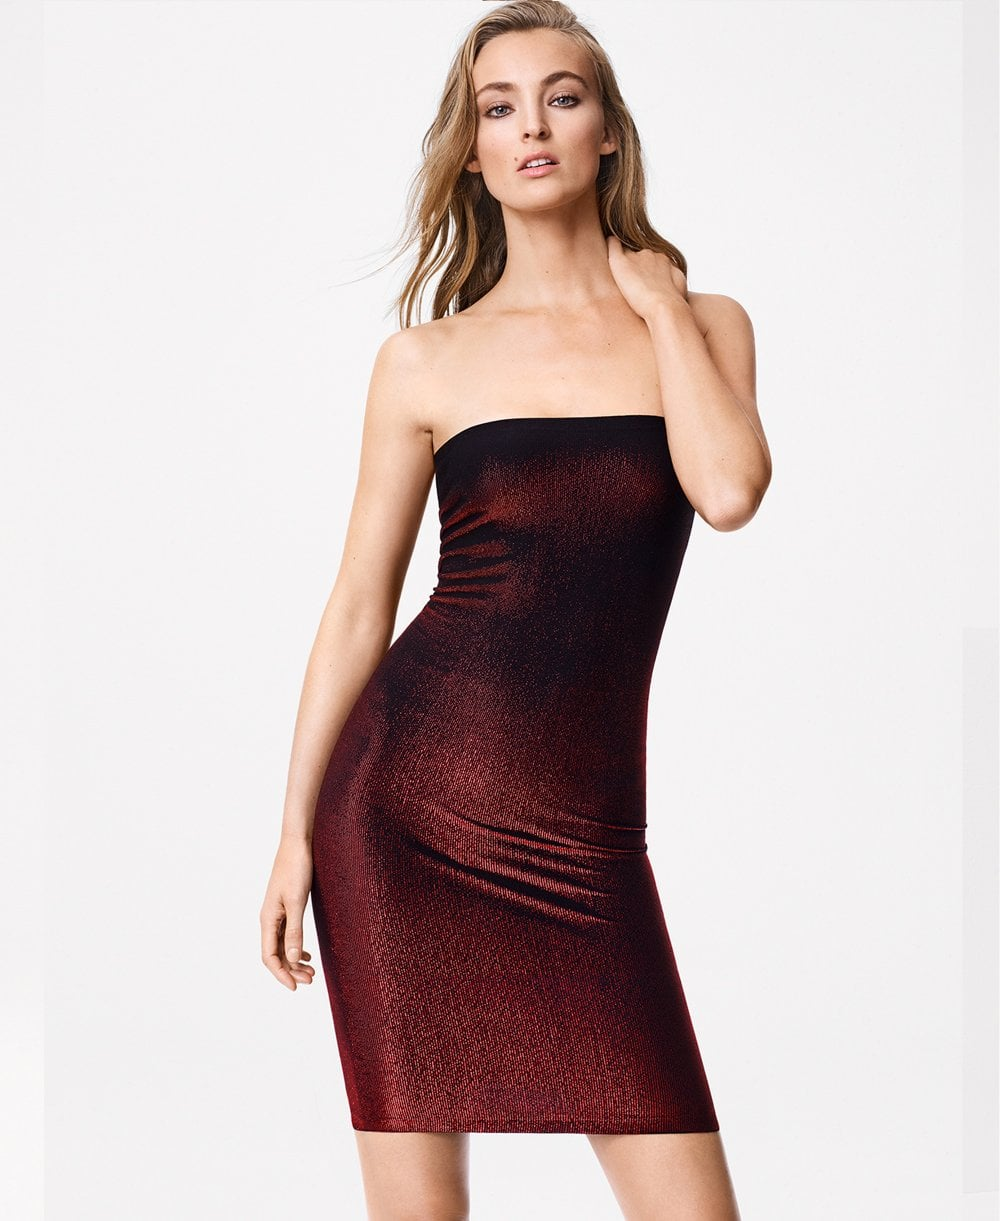 cd07ba959530 Wolford Wilma Dress - Clothing from luxury-legs.com UK